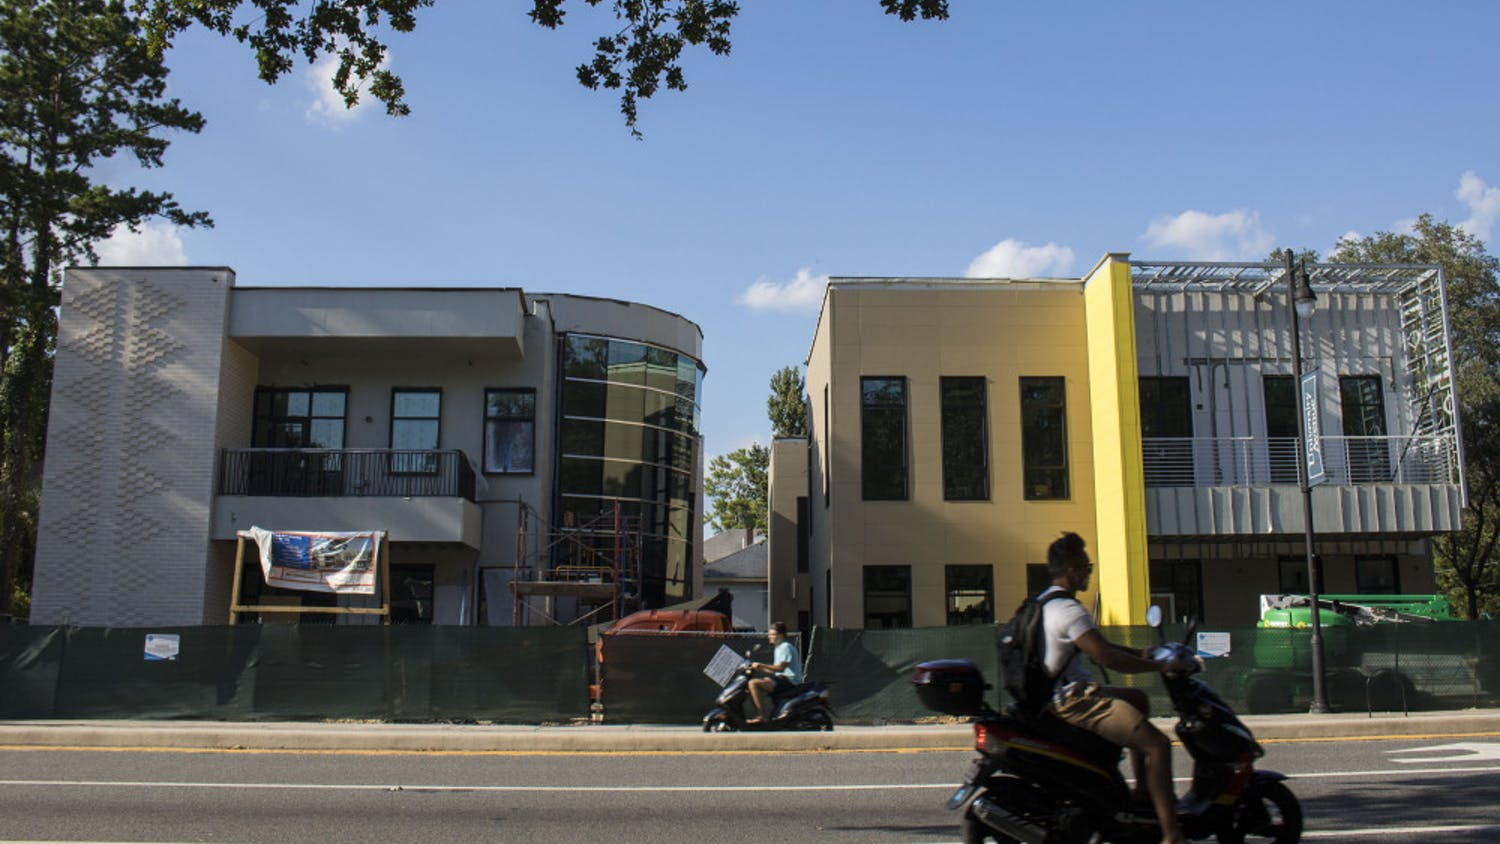 Students pass in front of the location of the newly renovated IBC and La Casita buildings.